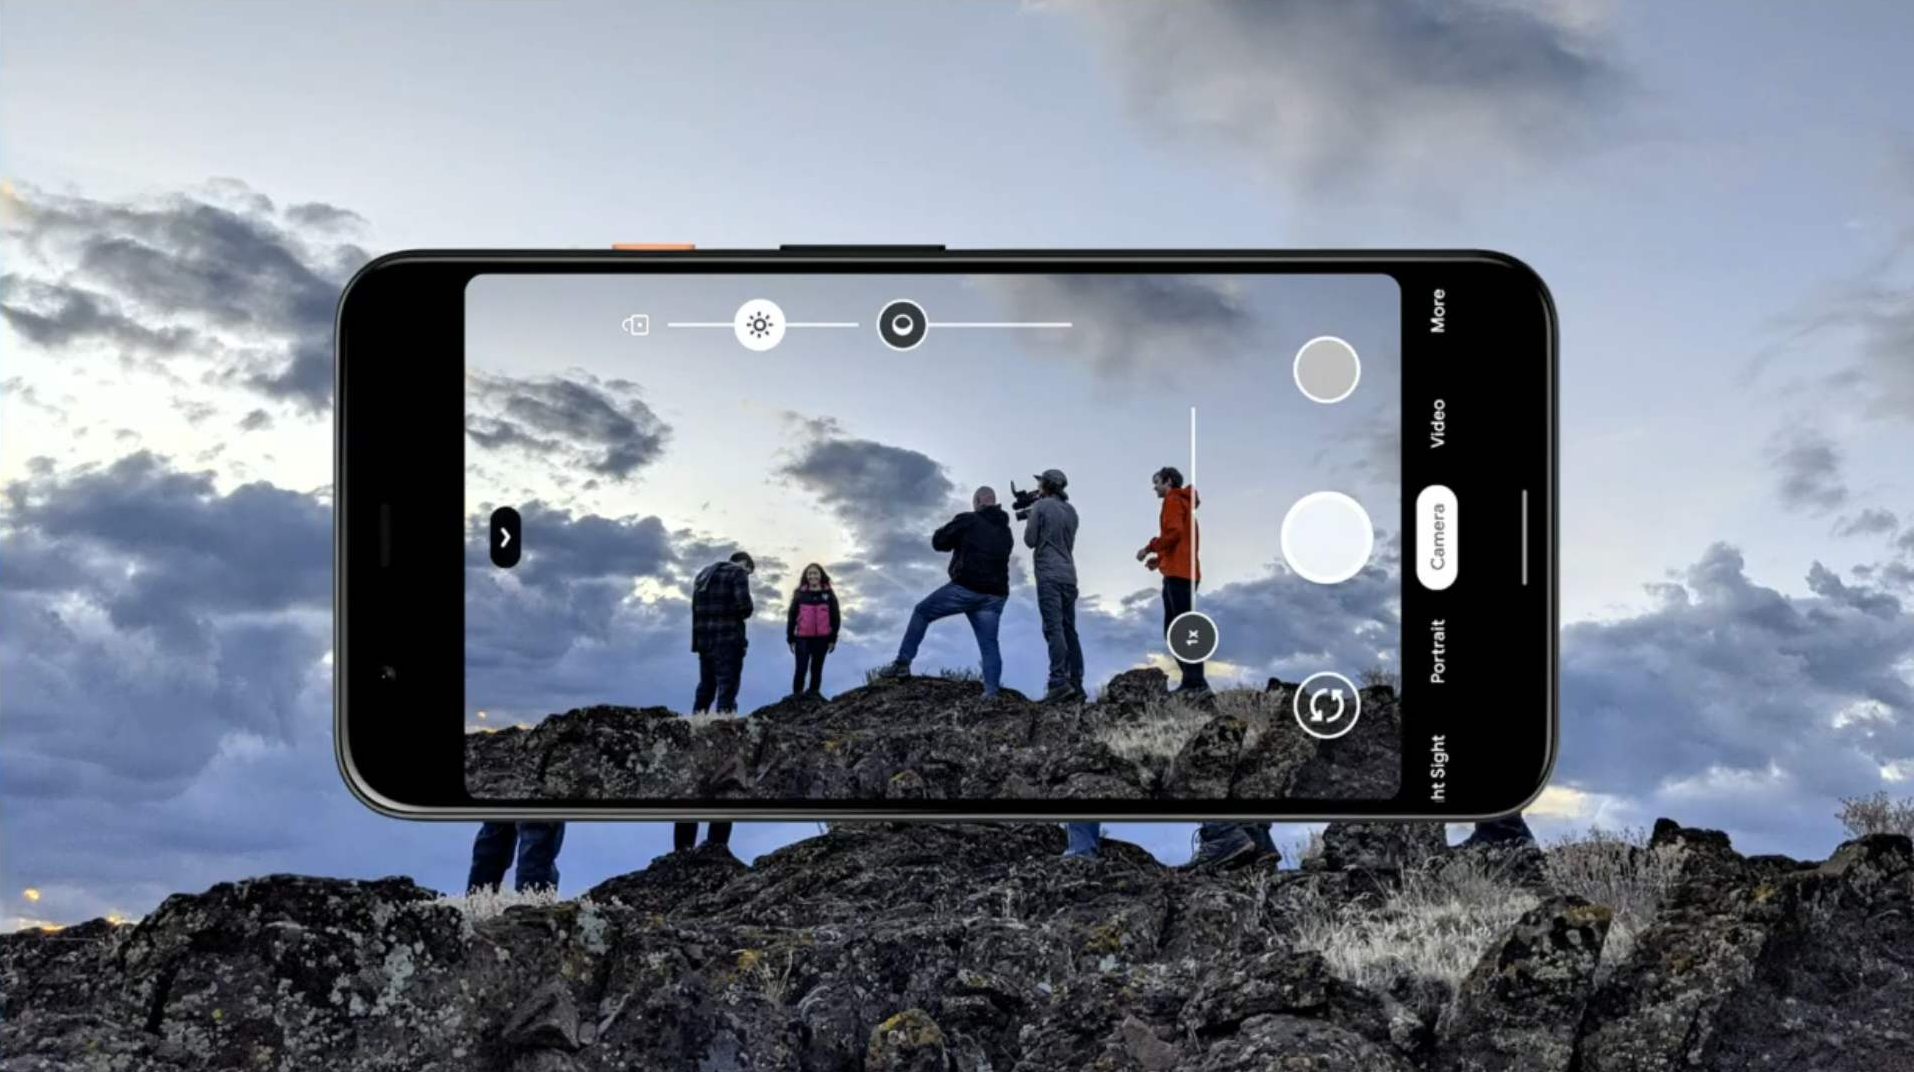 Pixel 4 gets live HDR+ previews, 'dual exposure,' astrophotography, and improved portrait mode